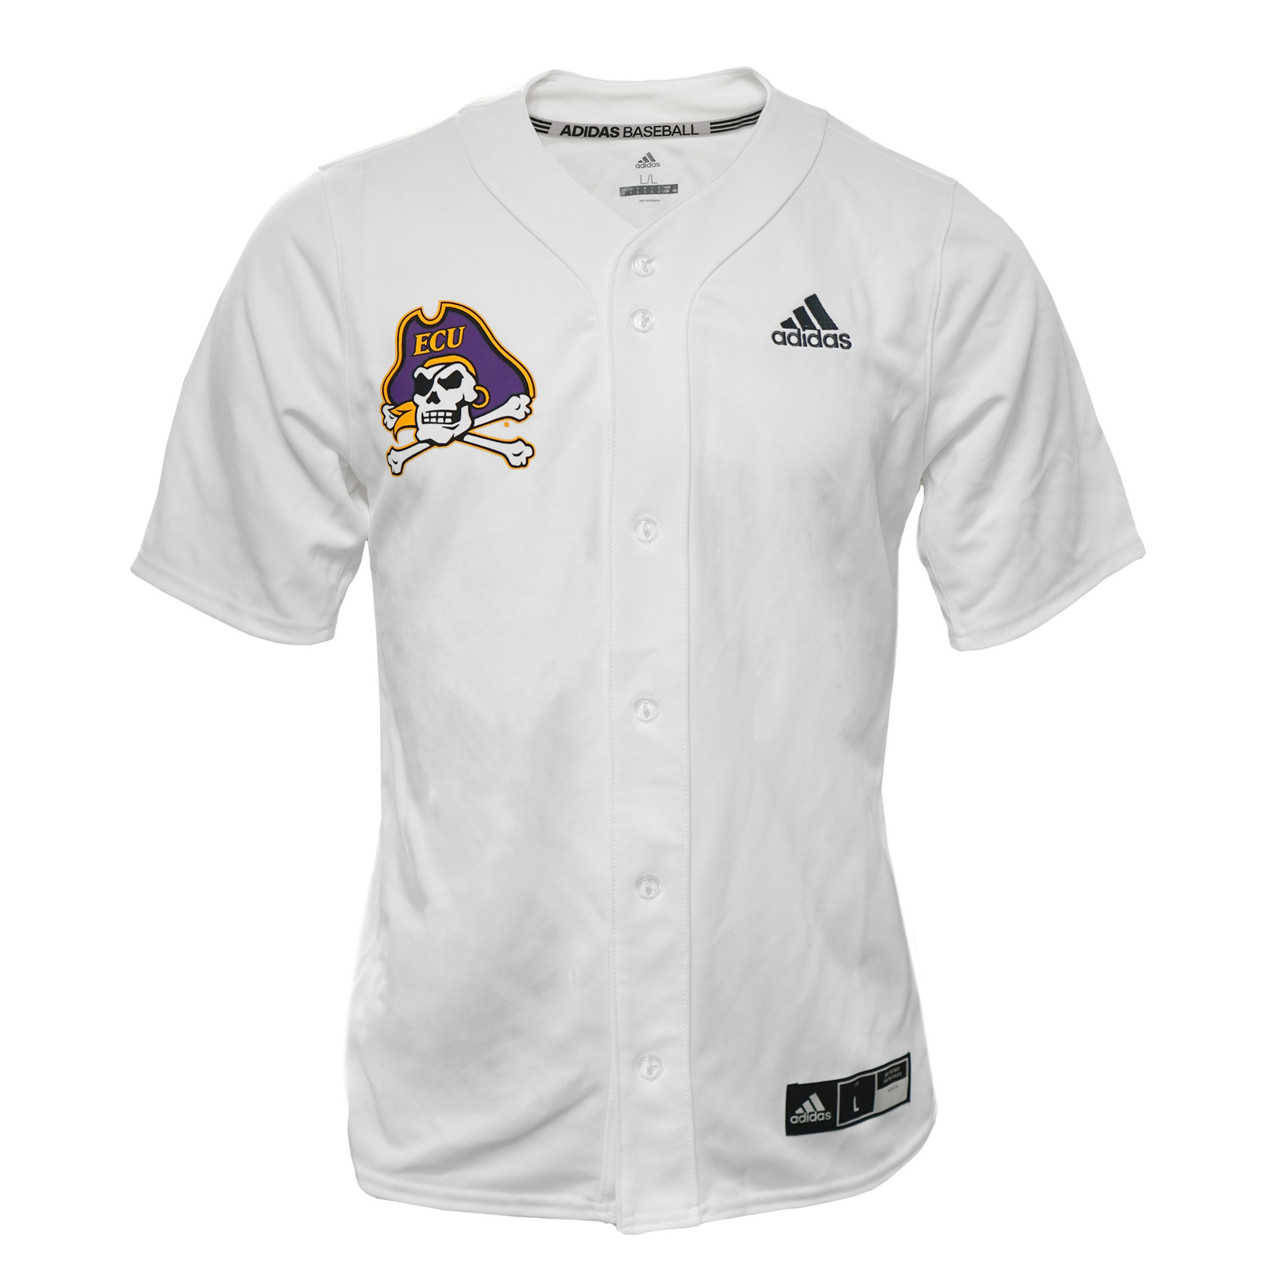 low priced 24c34 cbc00 White ECU #19 Button Down Baseball Jersey